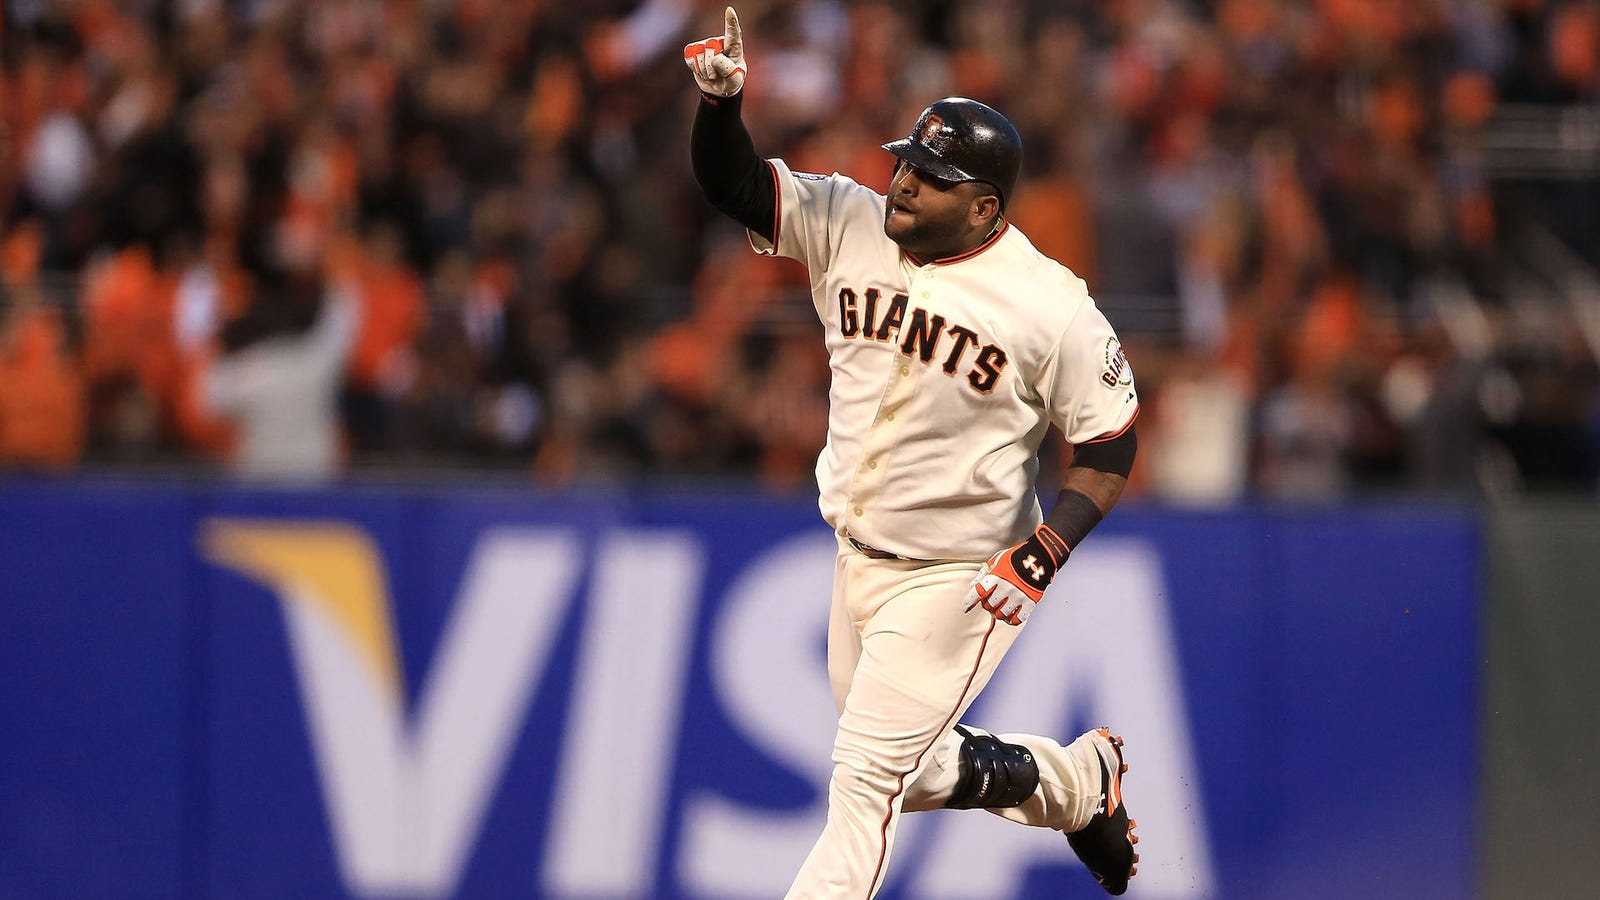 sandoval single guys Brandon crawford was intentionally walked by pedro strop to load the bases and bring up sandoval, who hit a sharp single to left against a  men's sports mlb baseball.